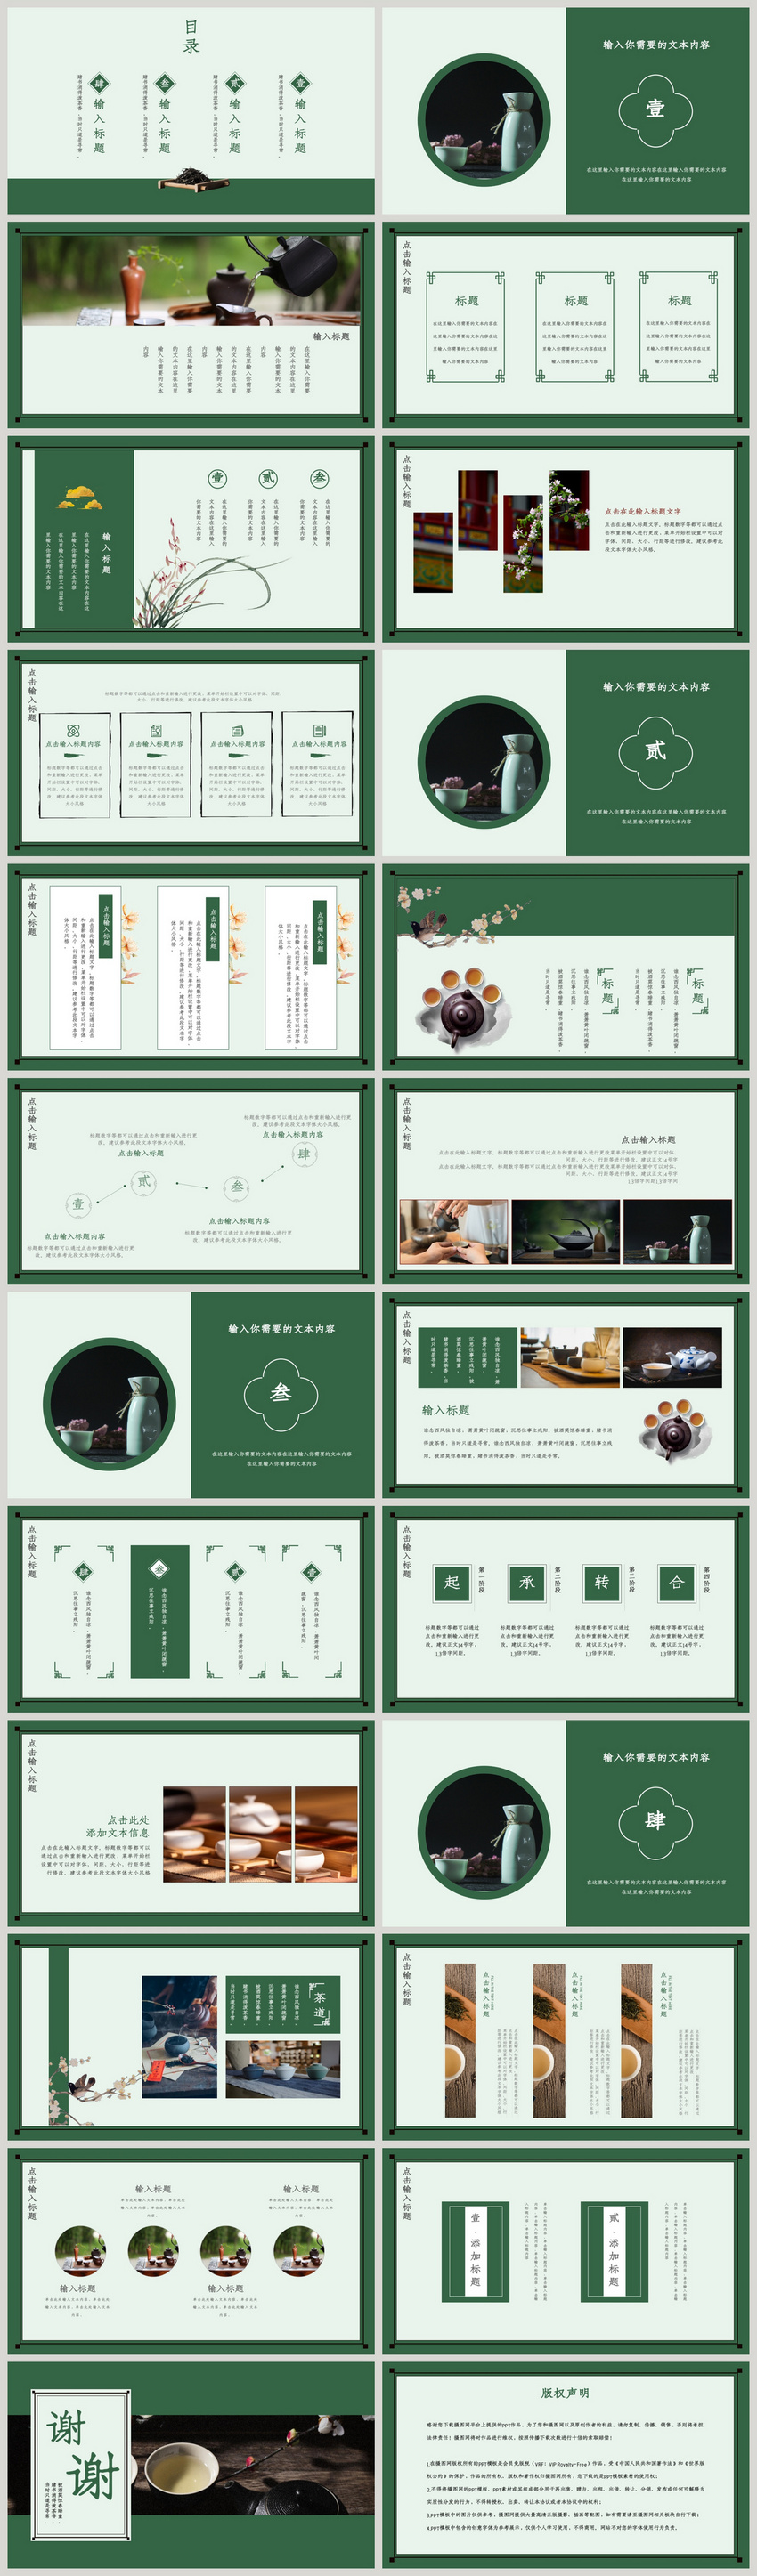 Green Tea Ceremony Promotion Ppt Template Powerpoint Templete Ppt Free Download 401577984 Lovepik Com